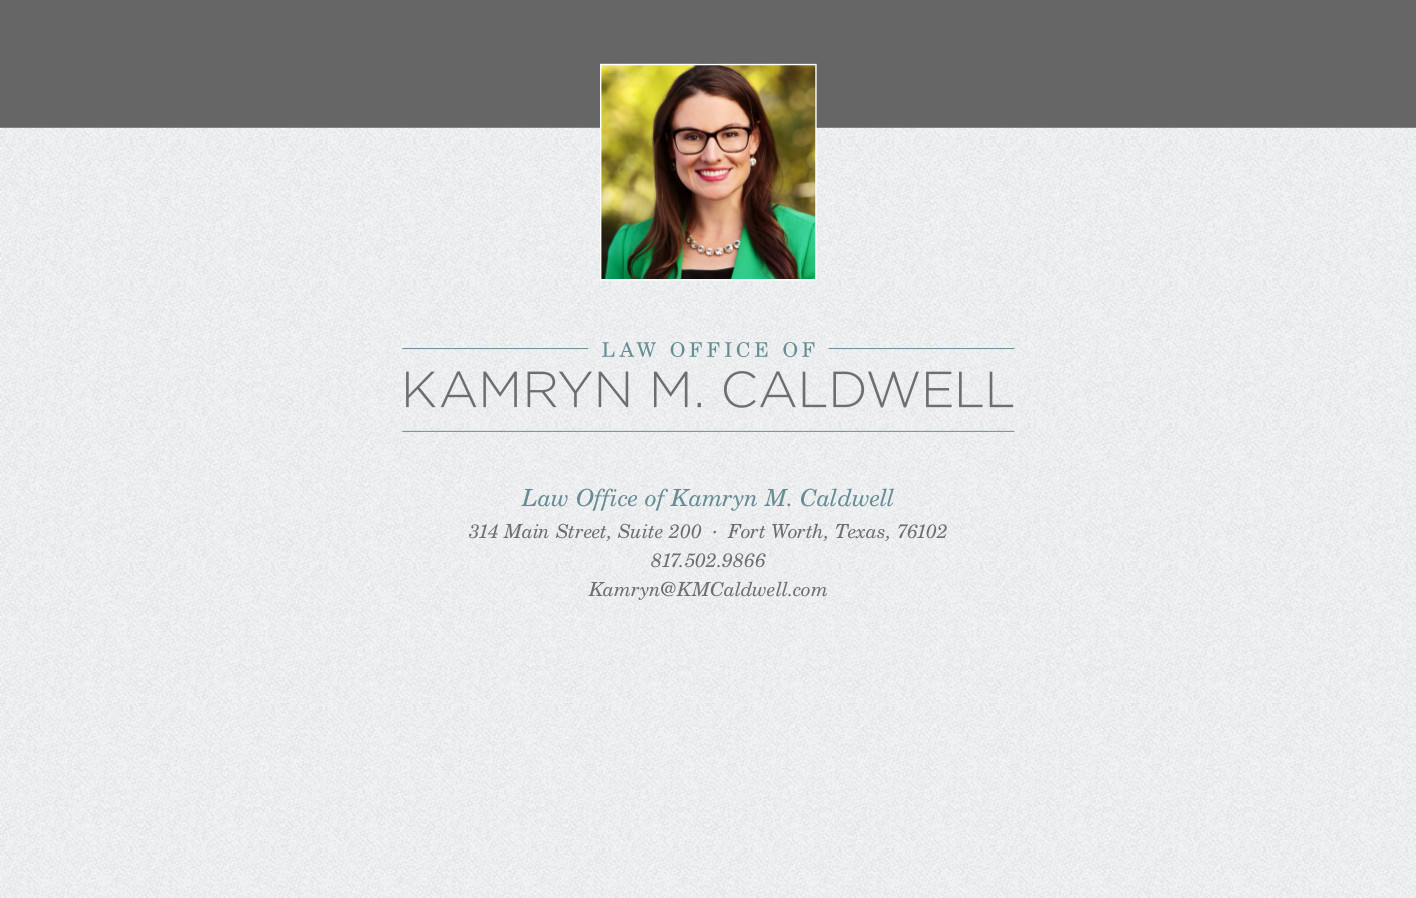 Law Office of Kamryn Caldwell